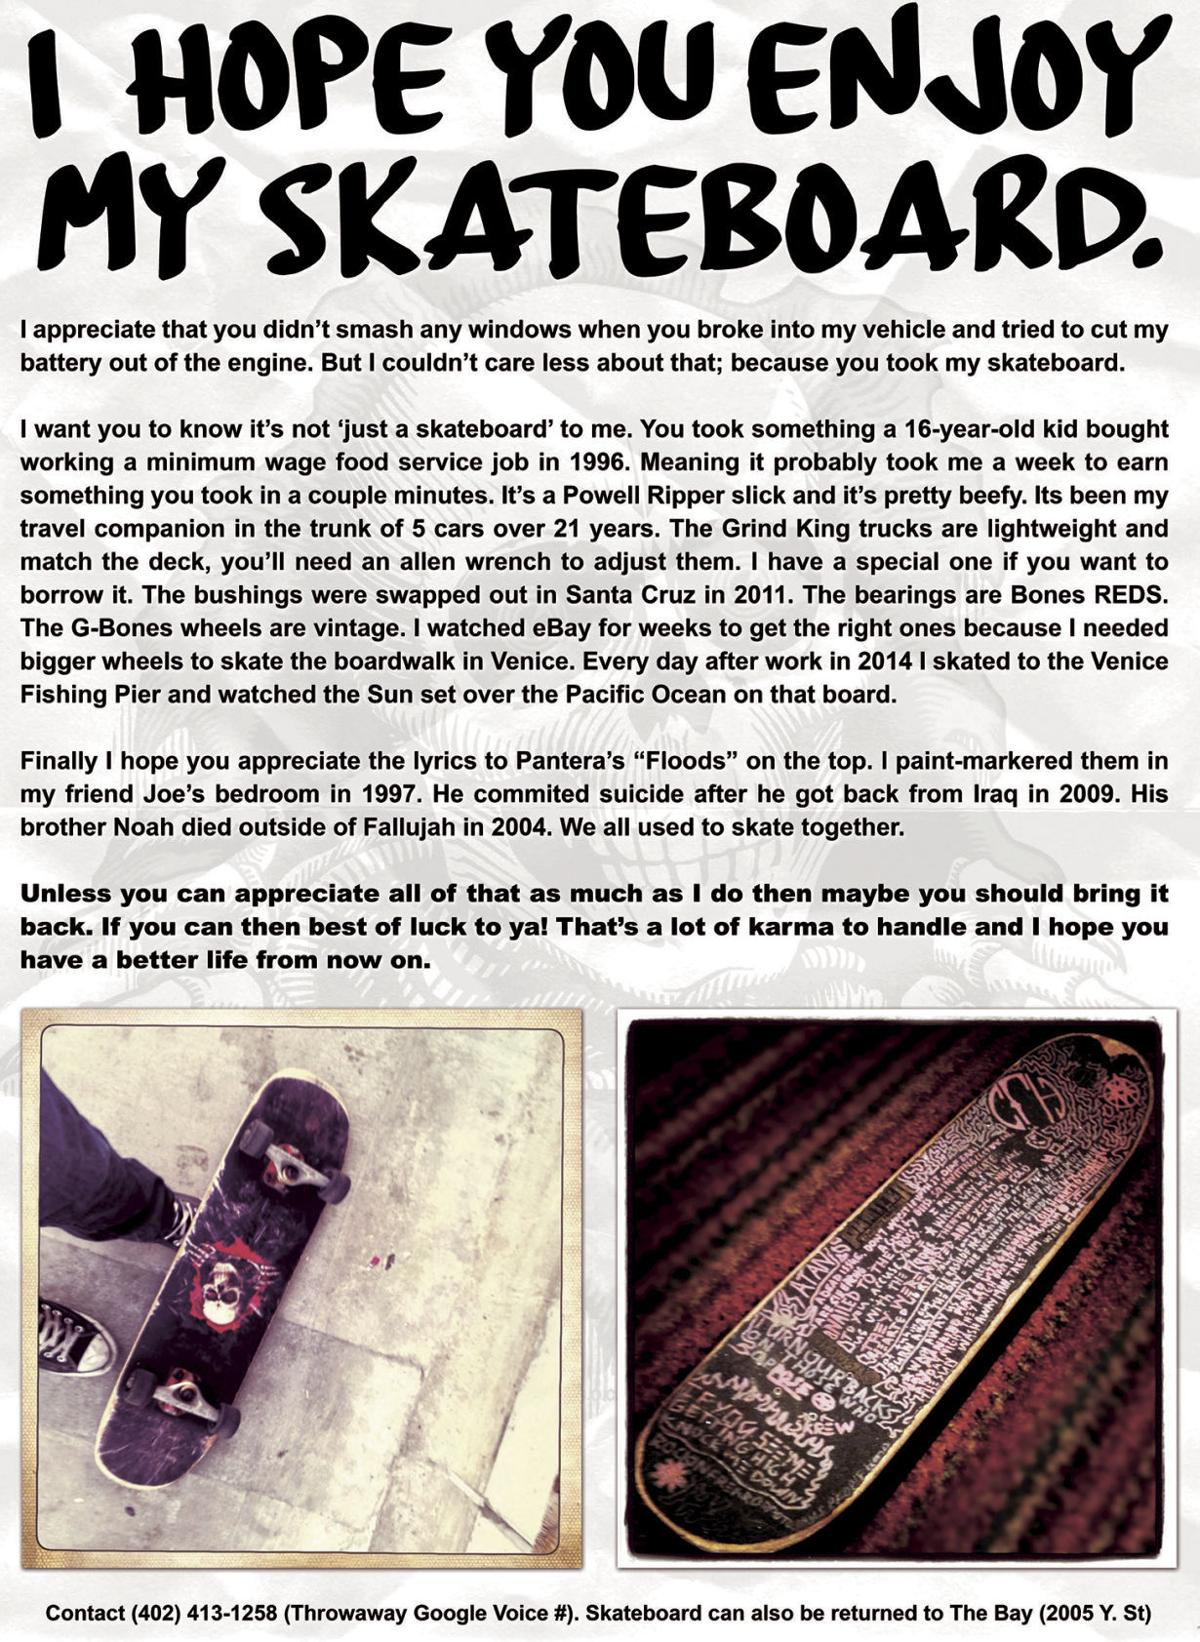 Lincoln man loses skateboard, writes letter to thief